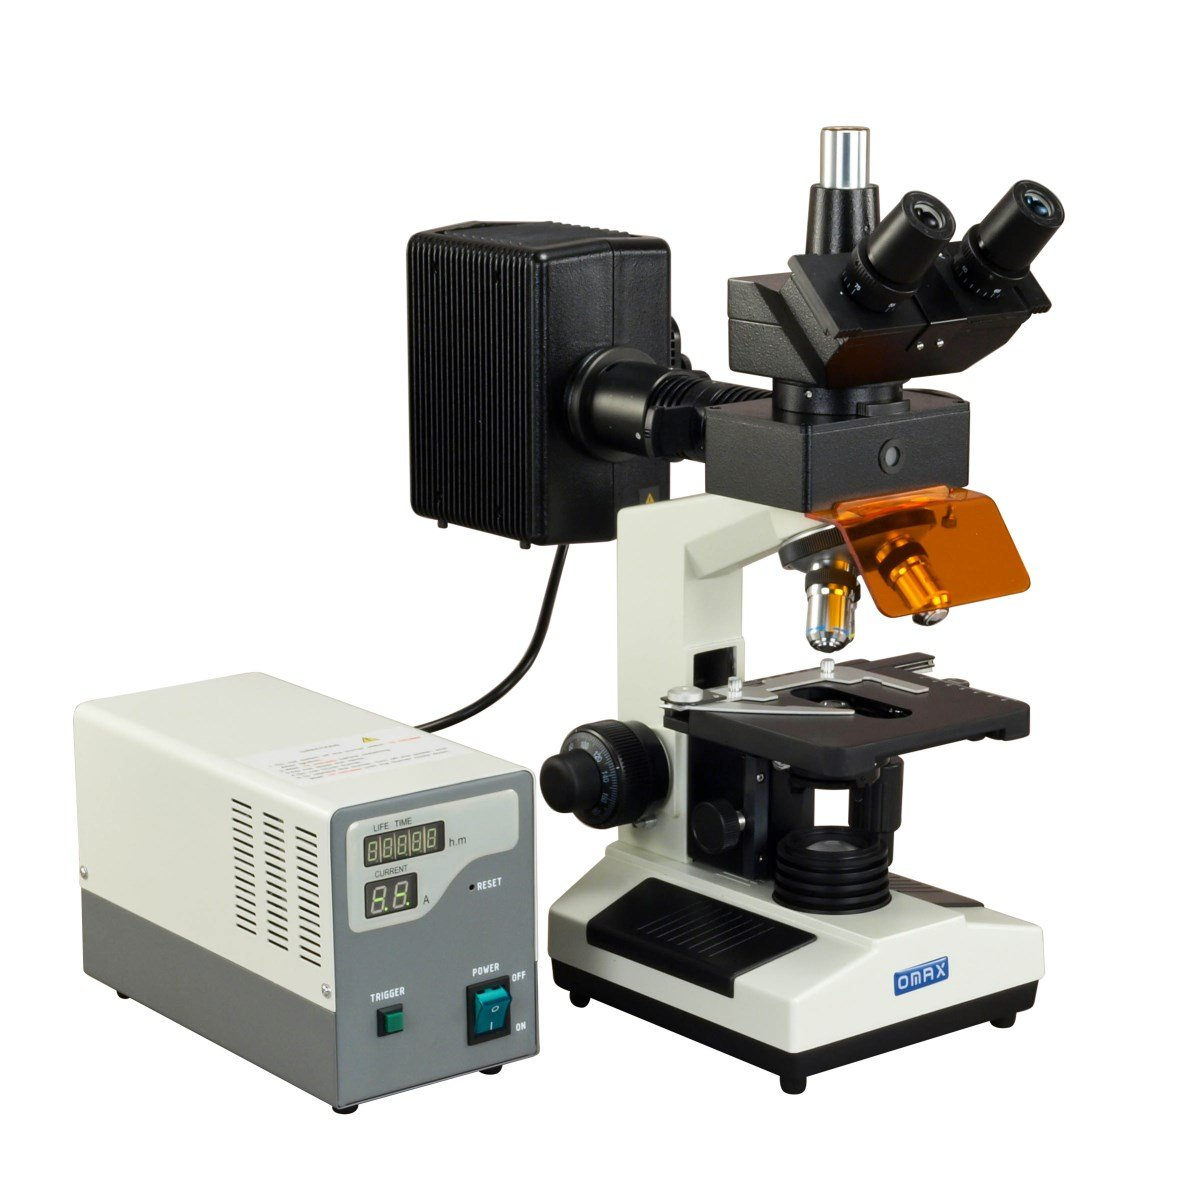 OMAX 40X-1600X Research Trinocular EPI-Fluorescence Compound Microscope by OMAX